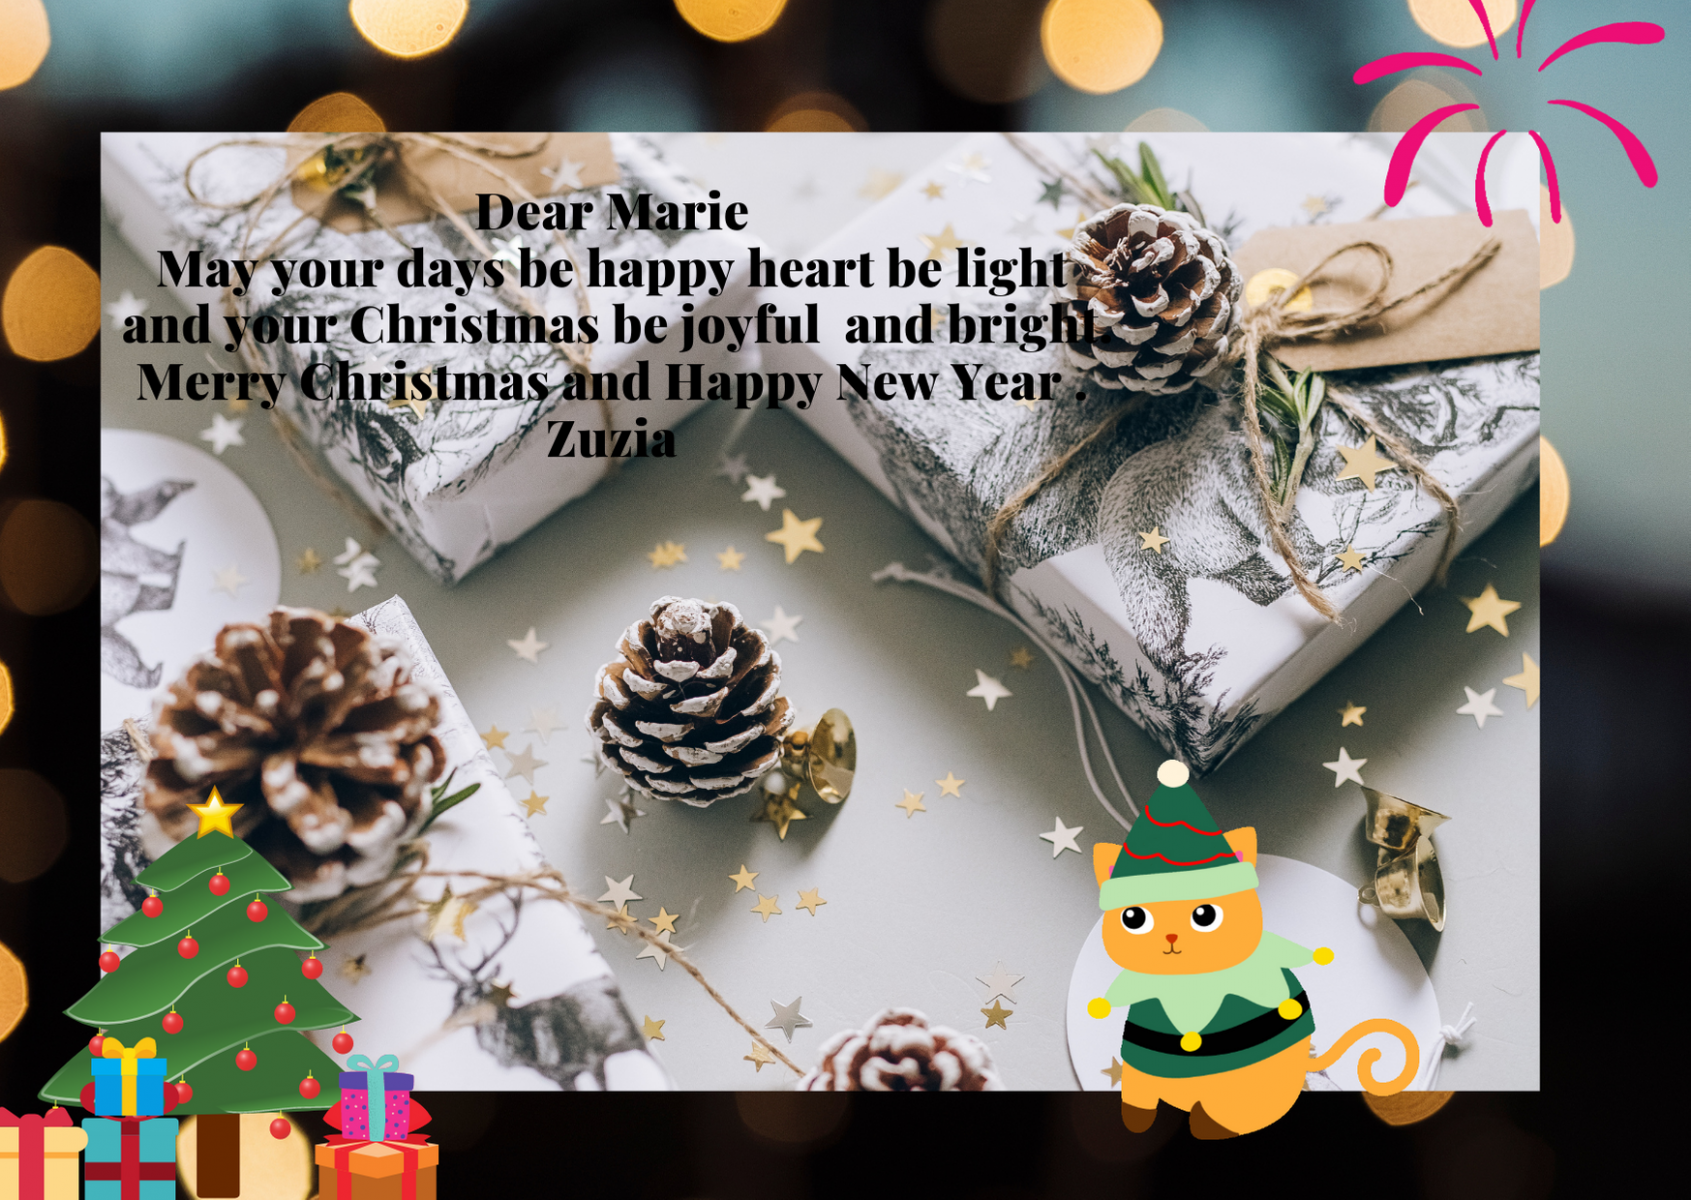 Dear Marie May your days be happy heart be light and your Christmas be joyful bright.Merry Christmas and Hppy New Your